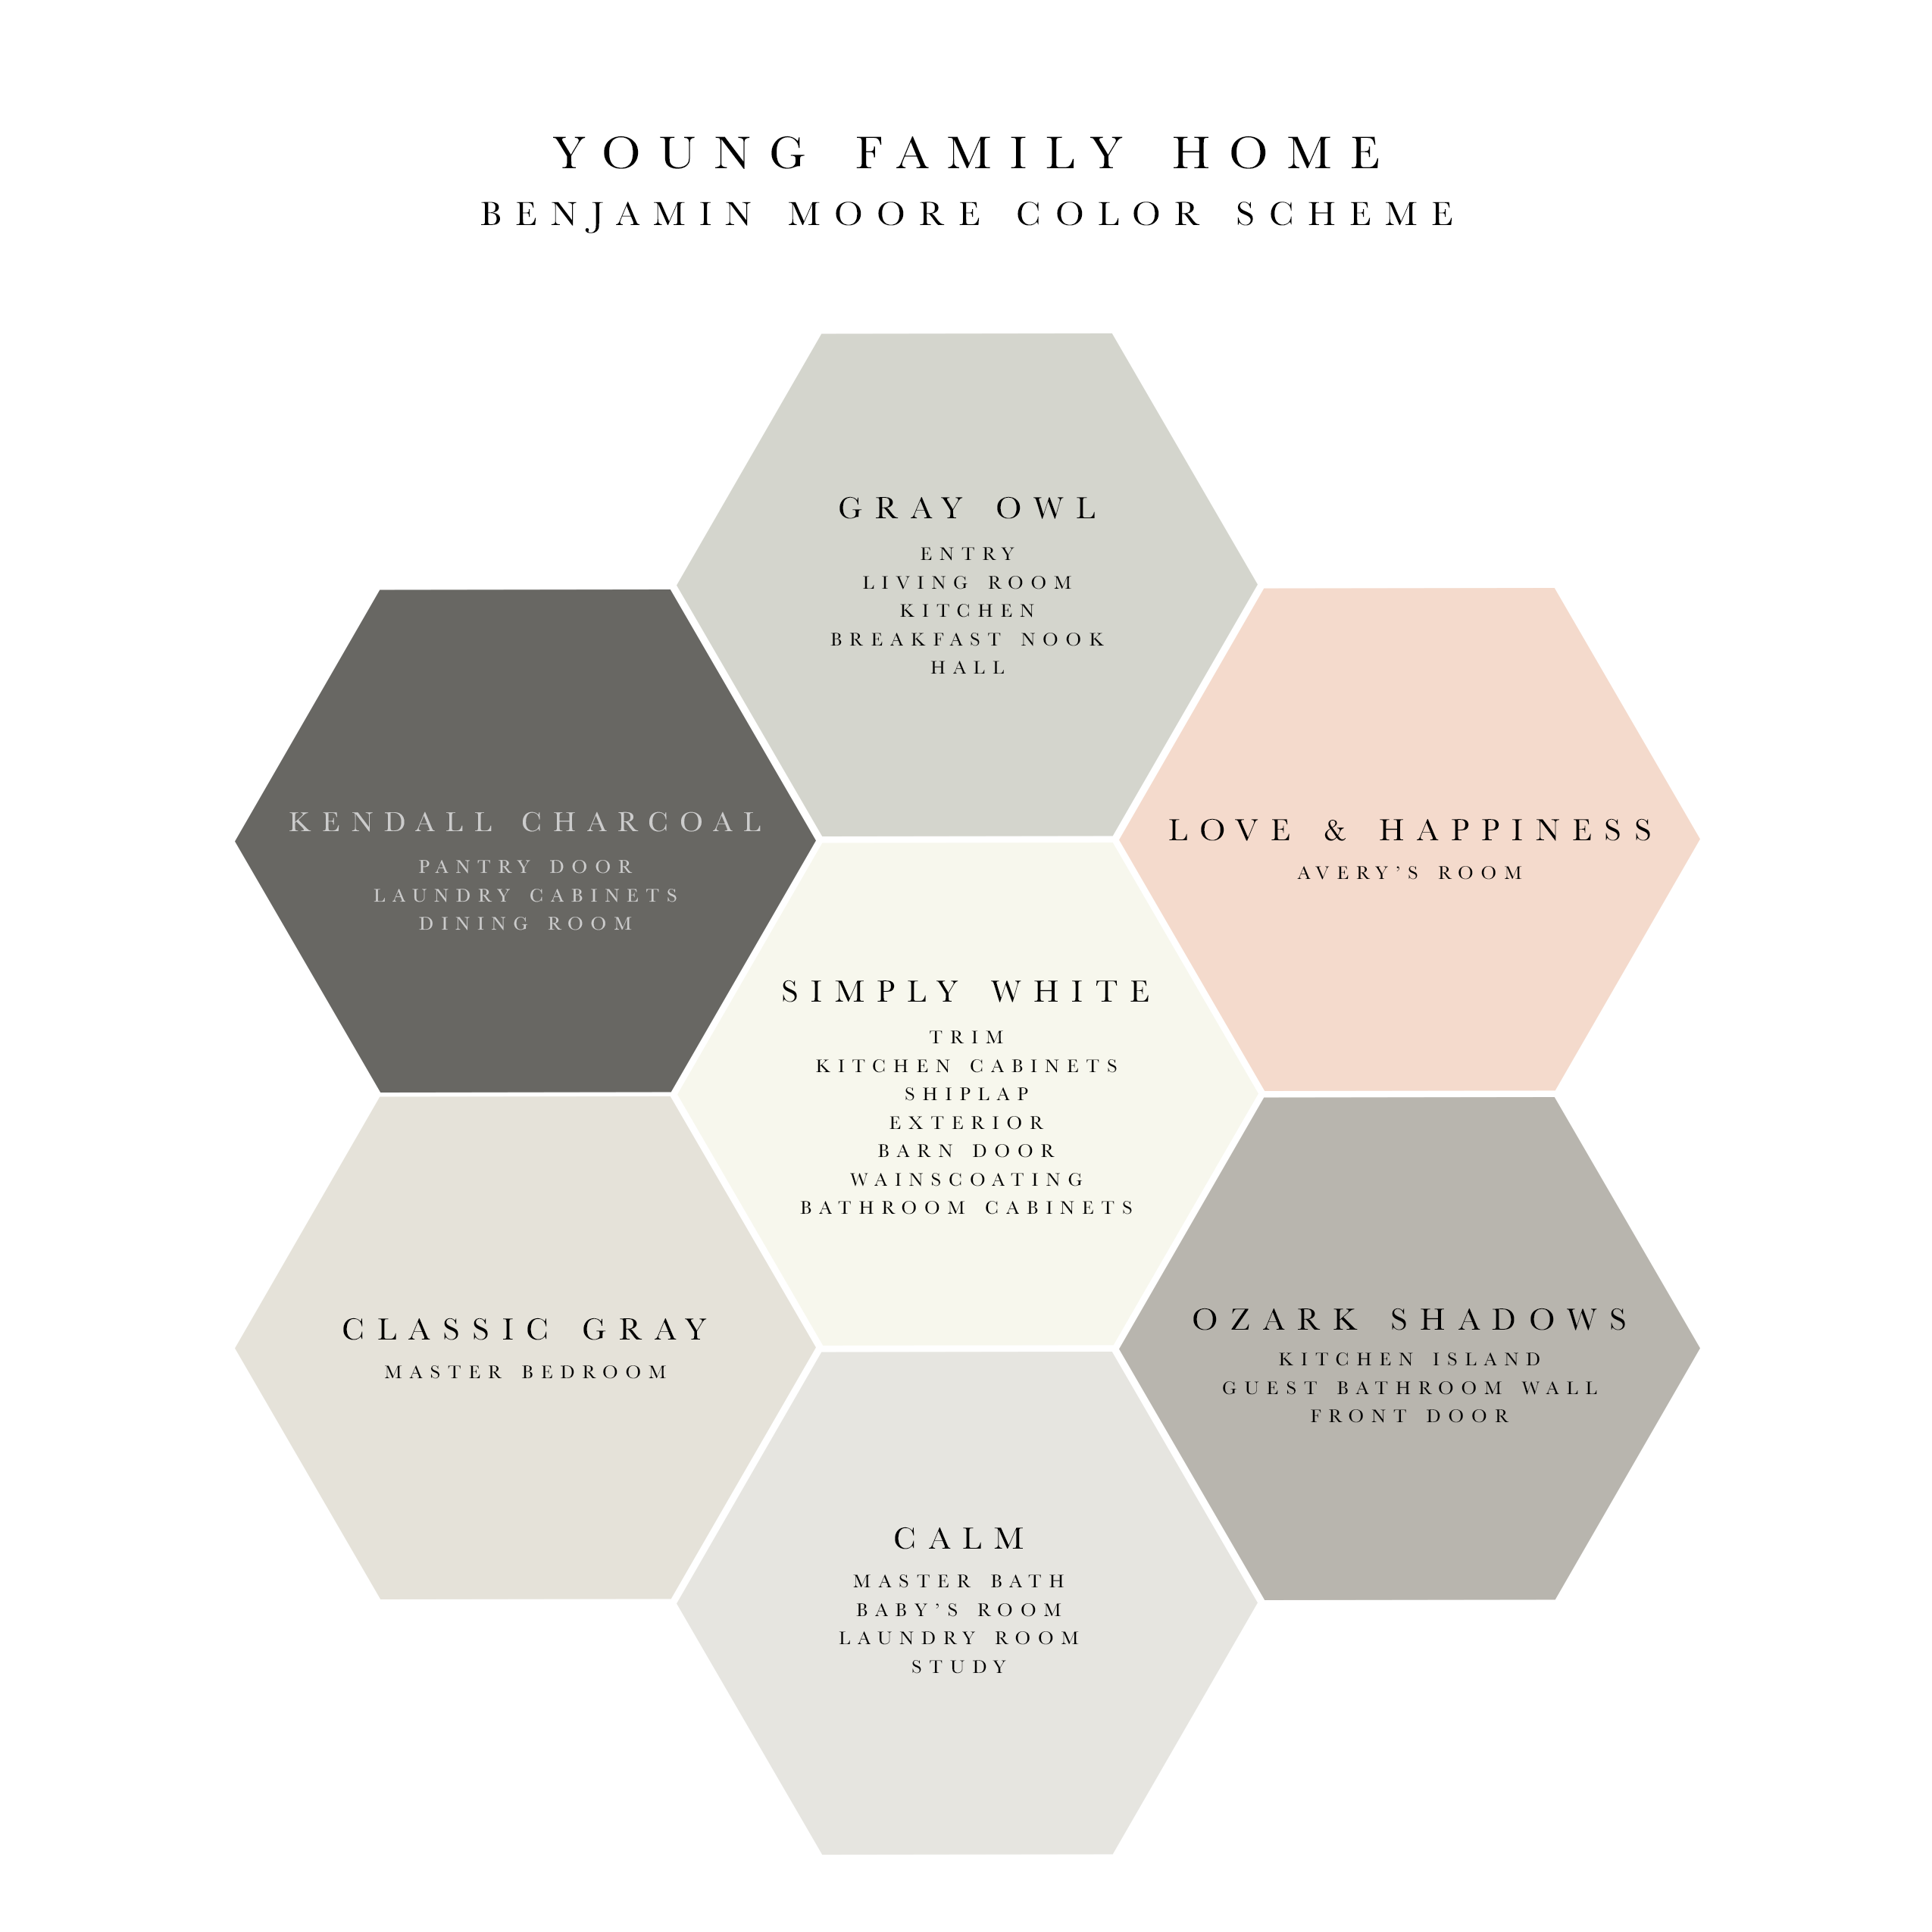 Soothing and elegant benjamin moore whole house color for Good neutral paint color for whole house